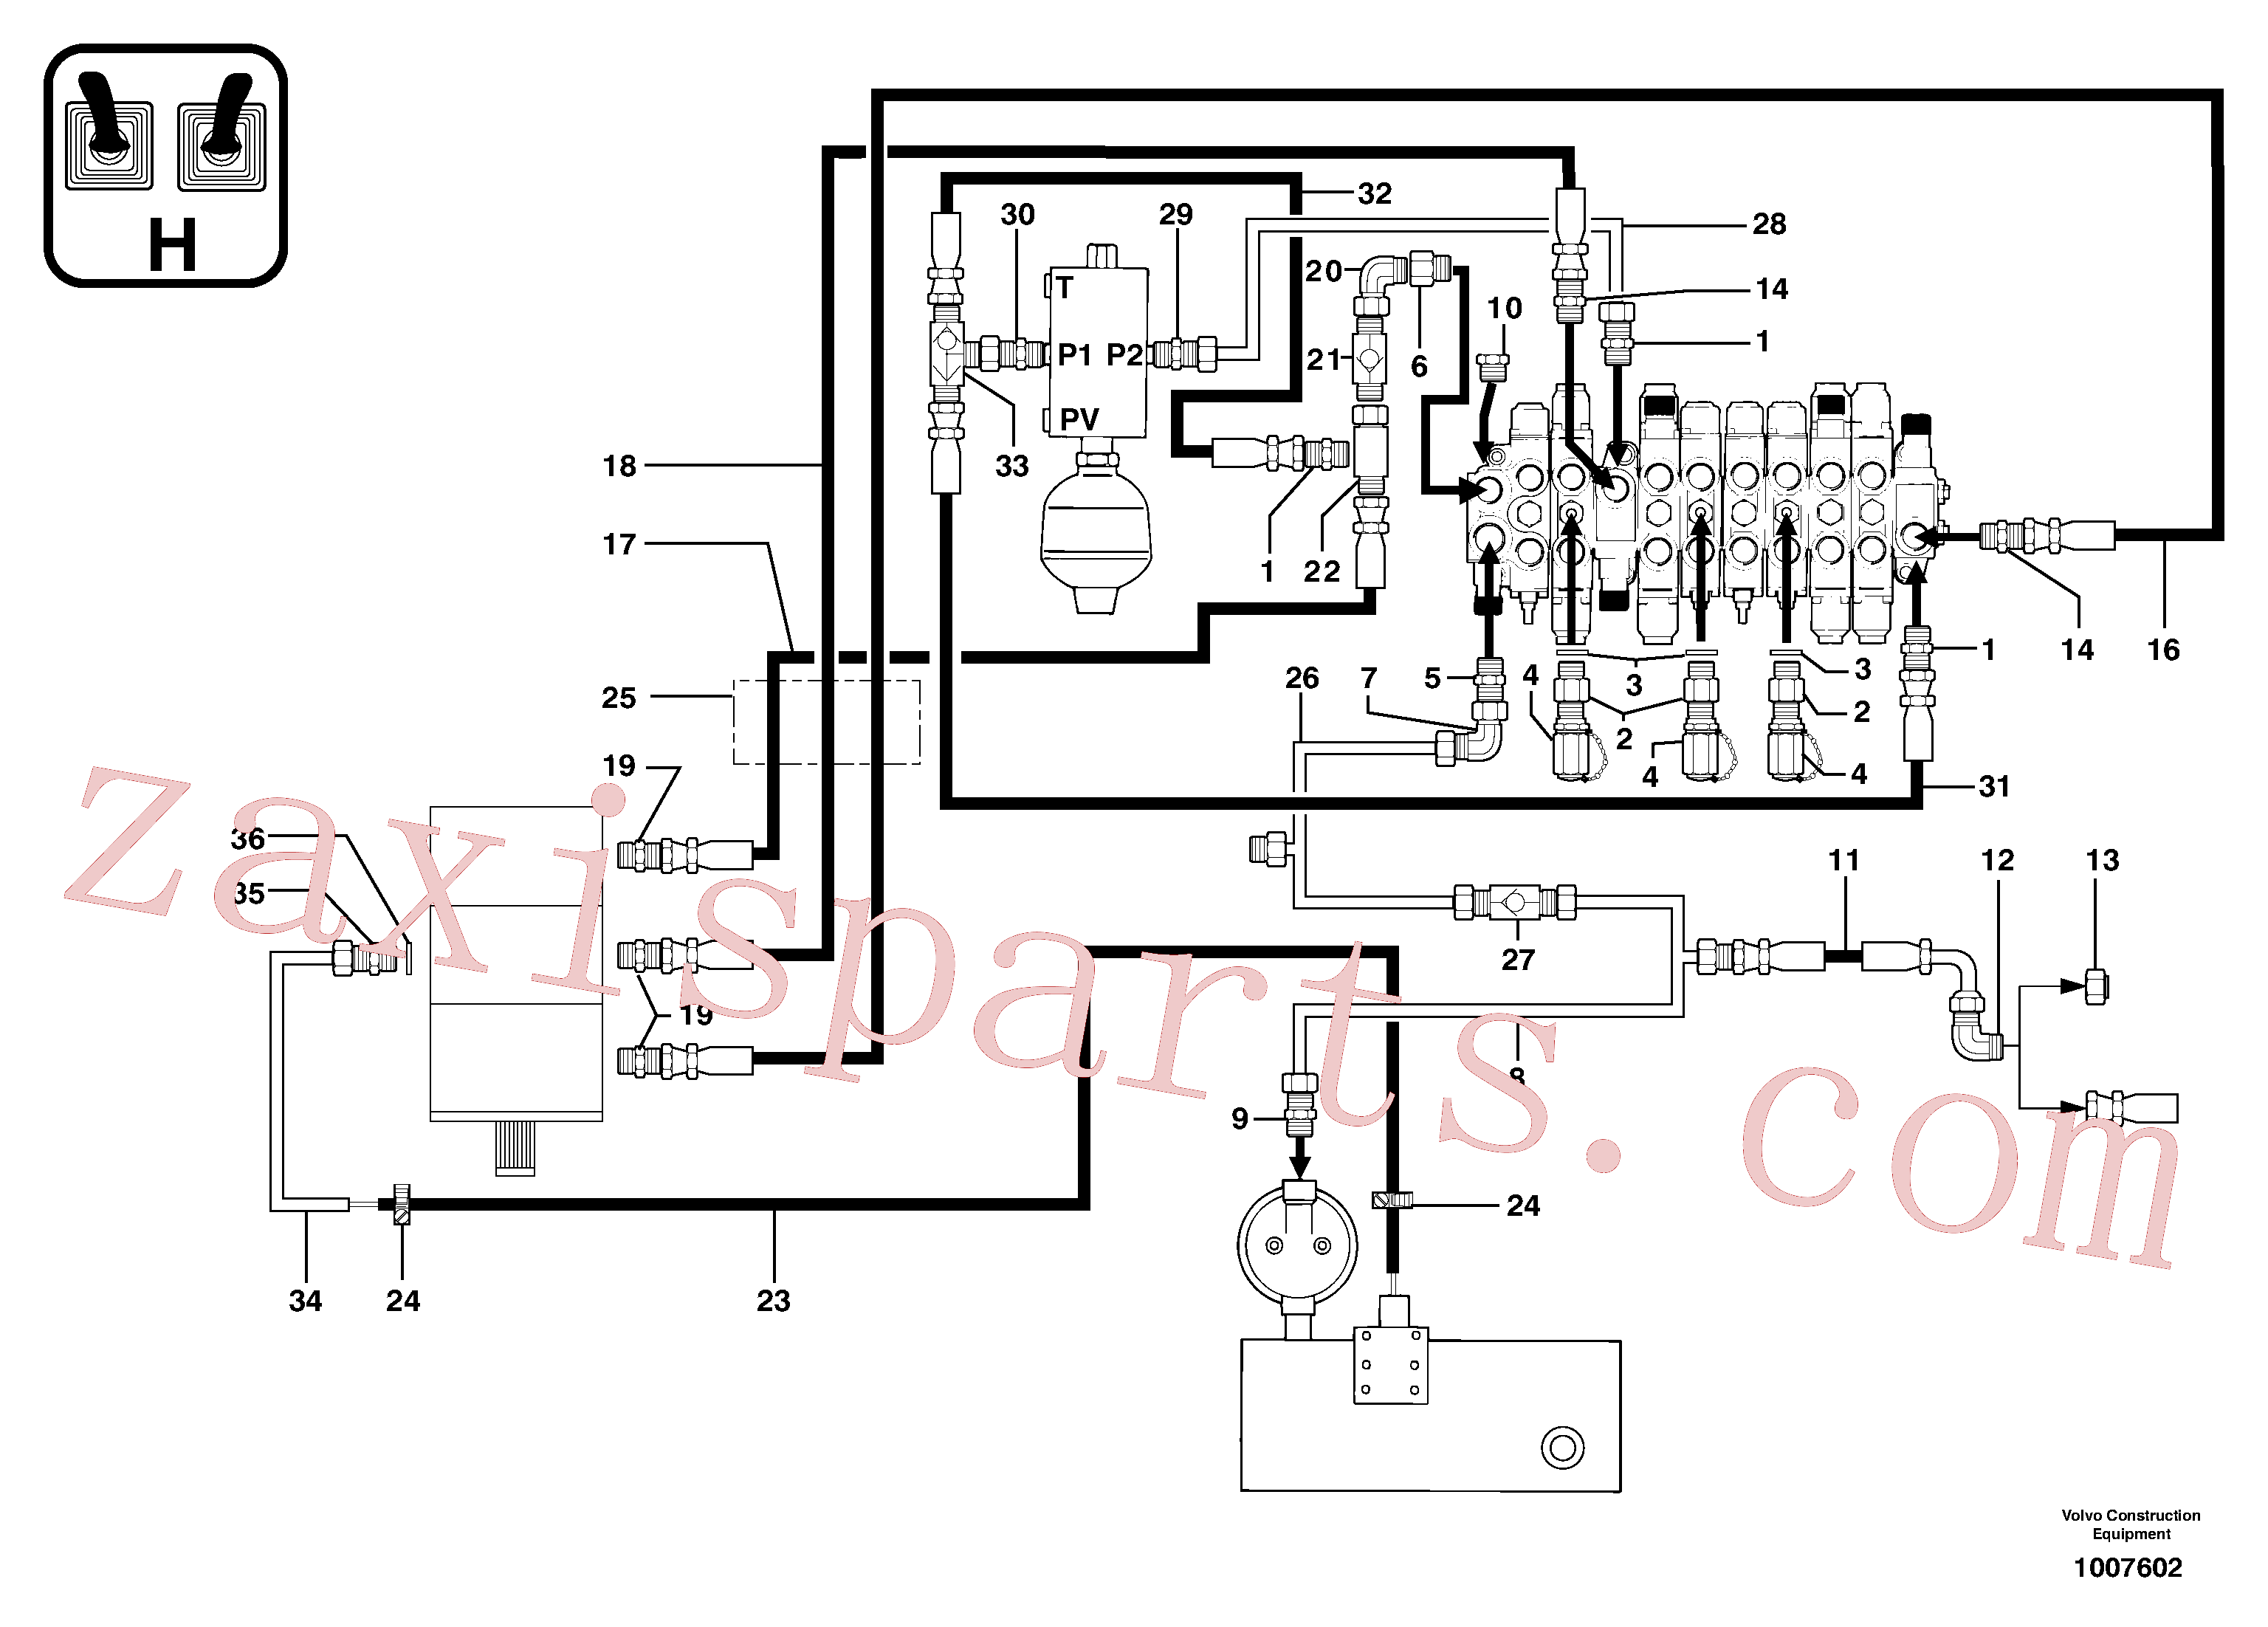 PJ4040064 for Volvo Attachments supply and return circuit(1007602 assembly)